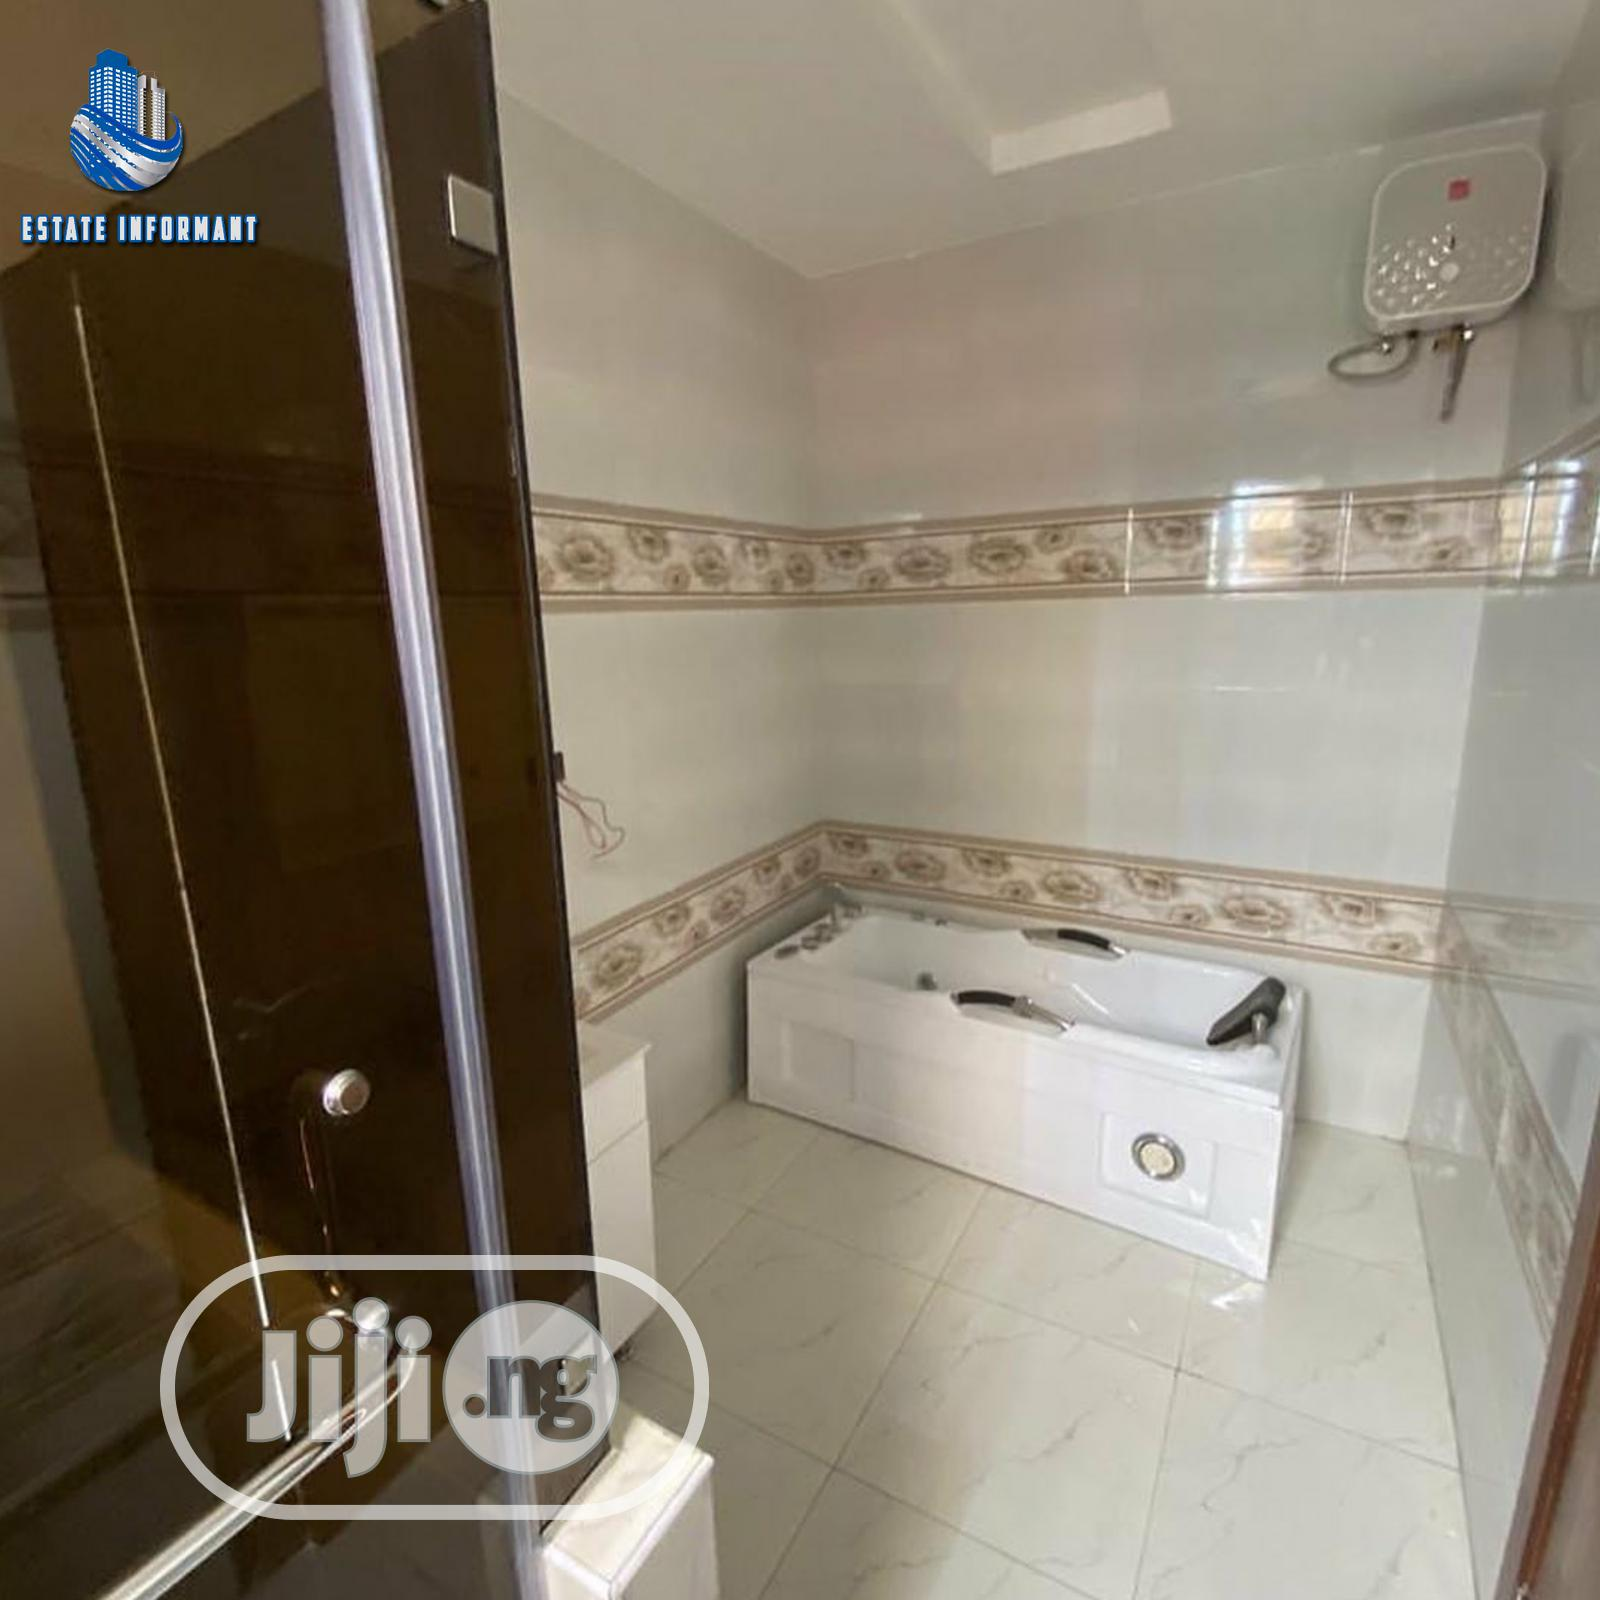 4 Bedroom Semi-detached Duplex With BQ   Houses & Apartments For Sale for sale in Lekki Phase 2, Lekki, Nigeria